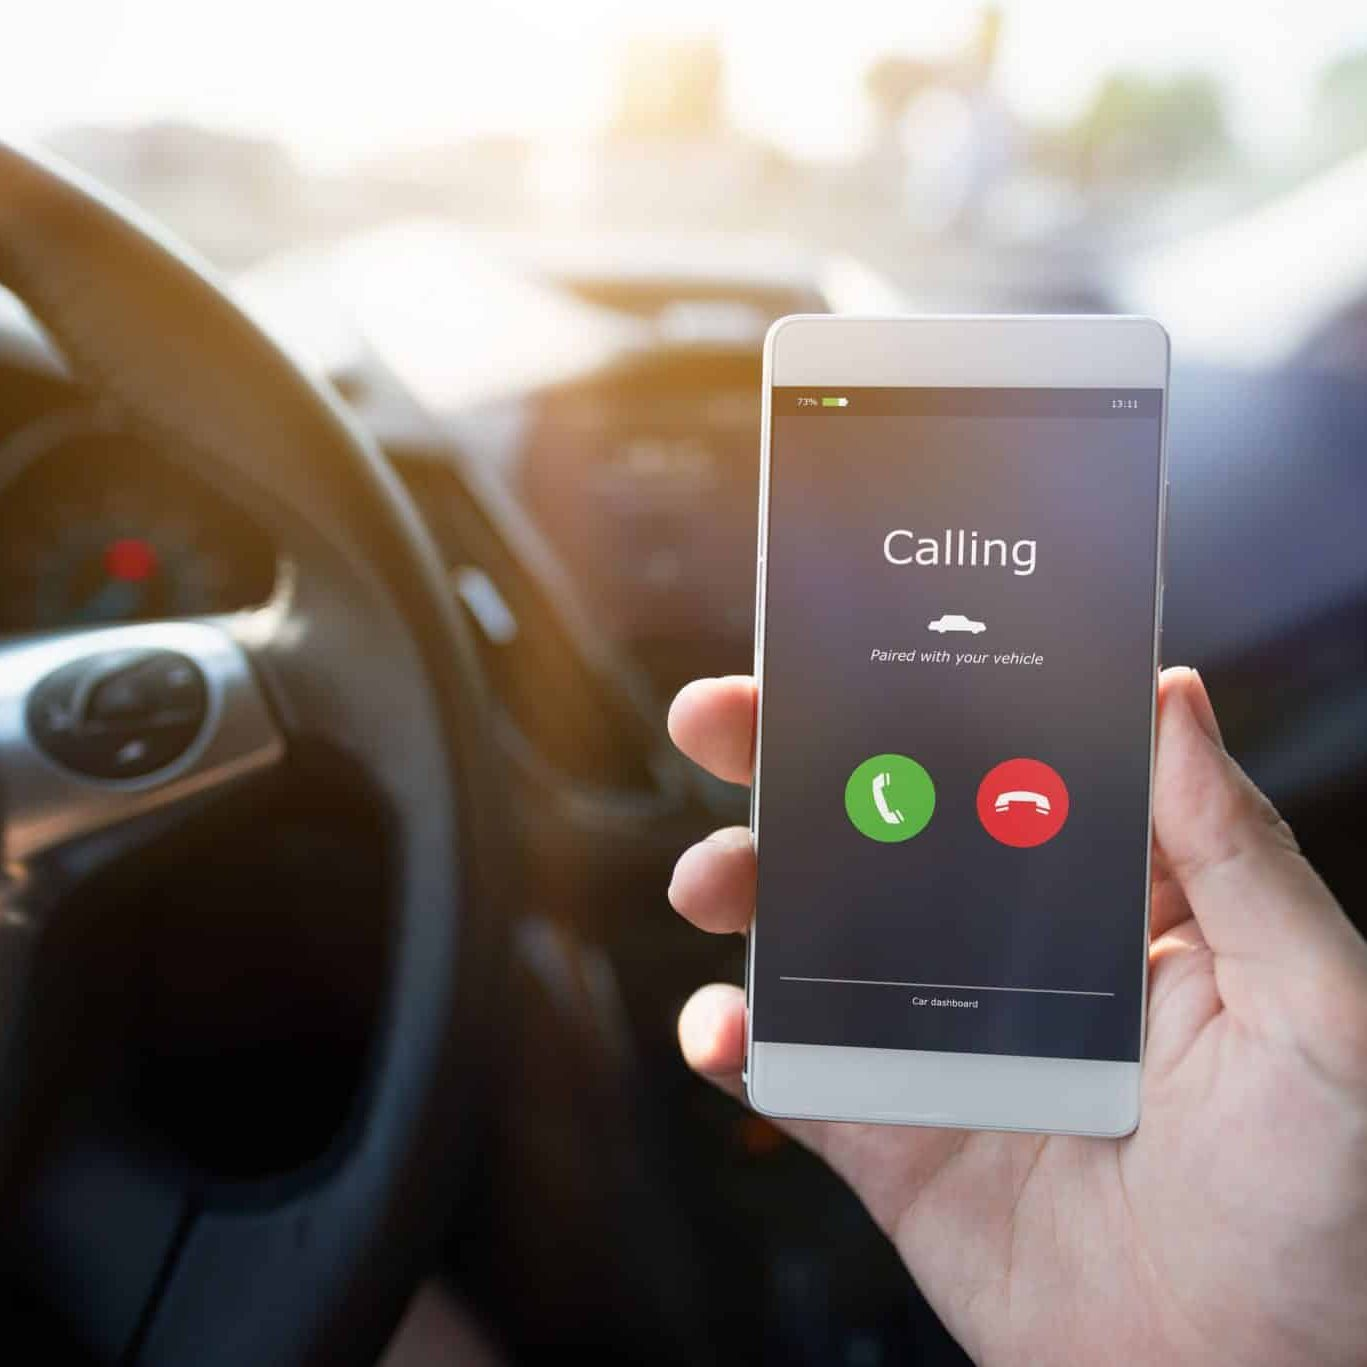 Man using phone calling system in car